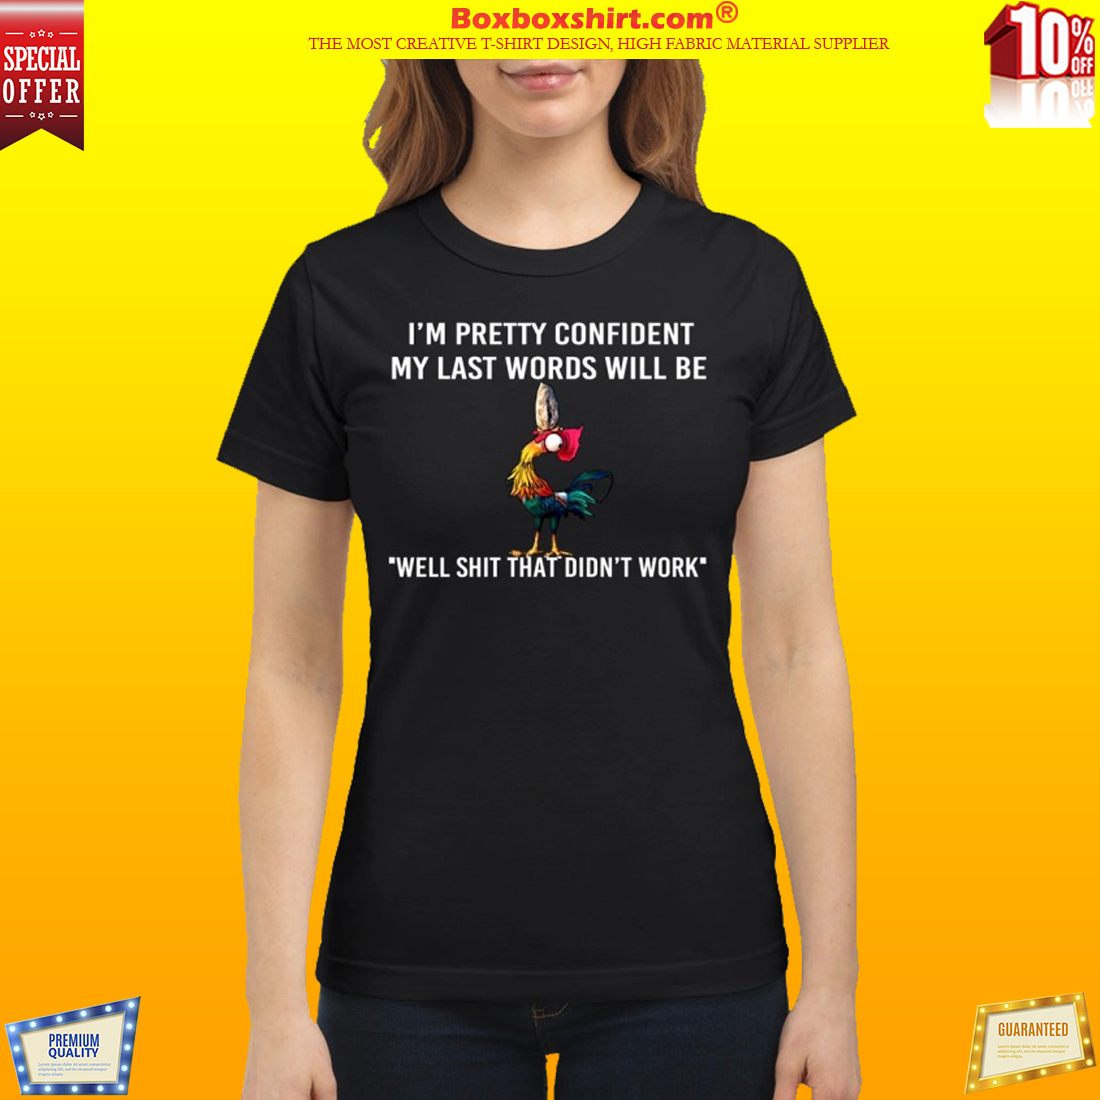 Chicken my last words will be well shit that didn't work classic shirt